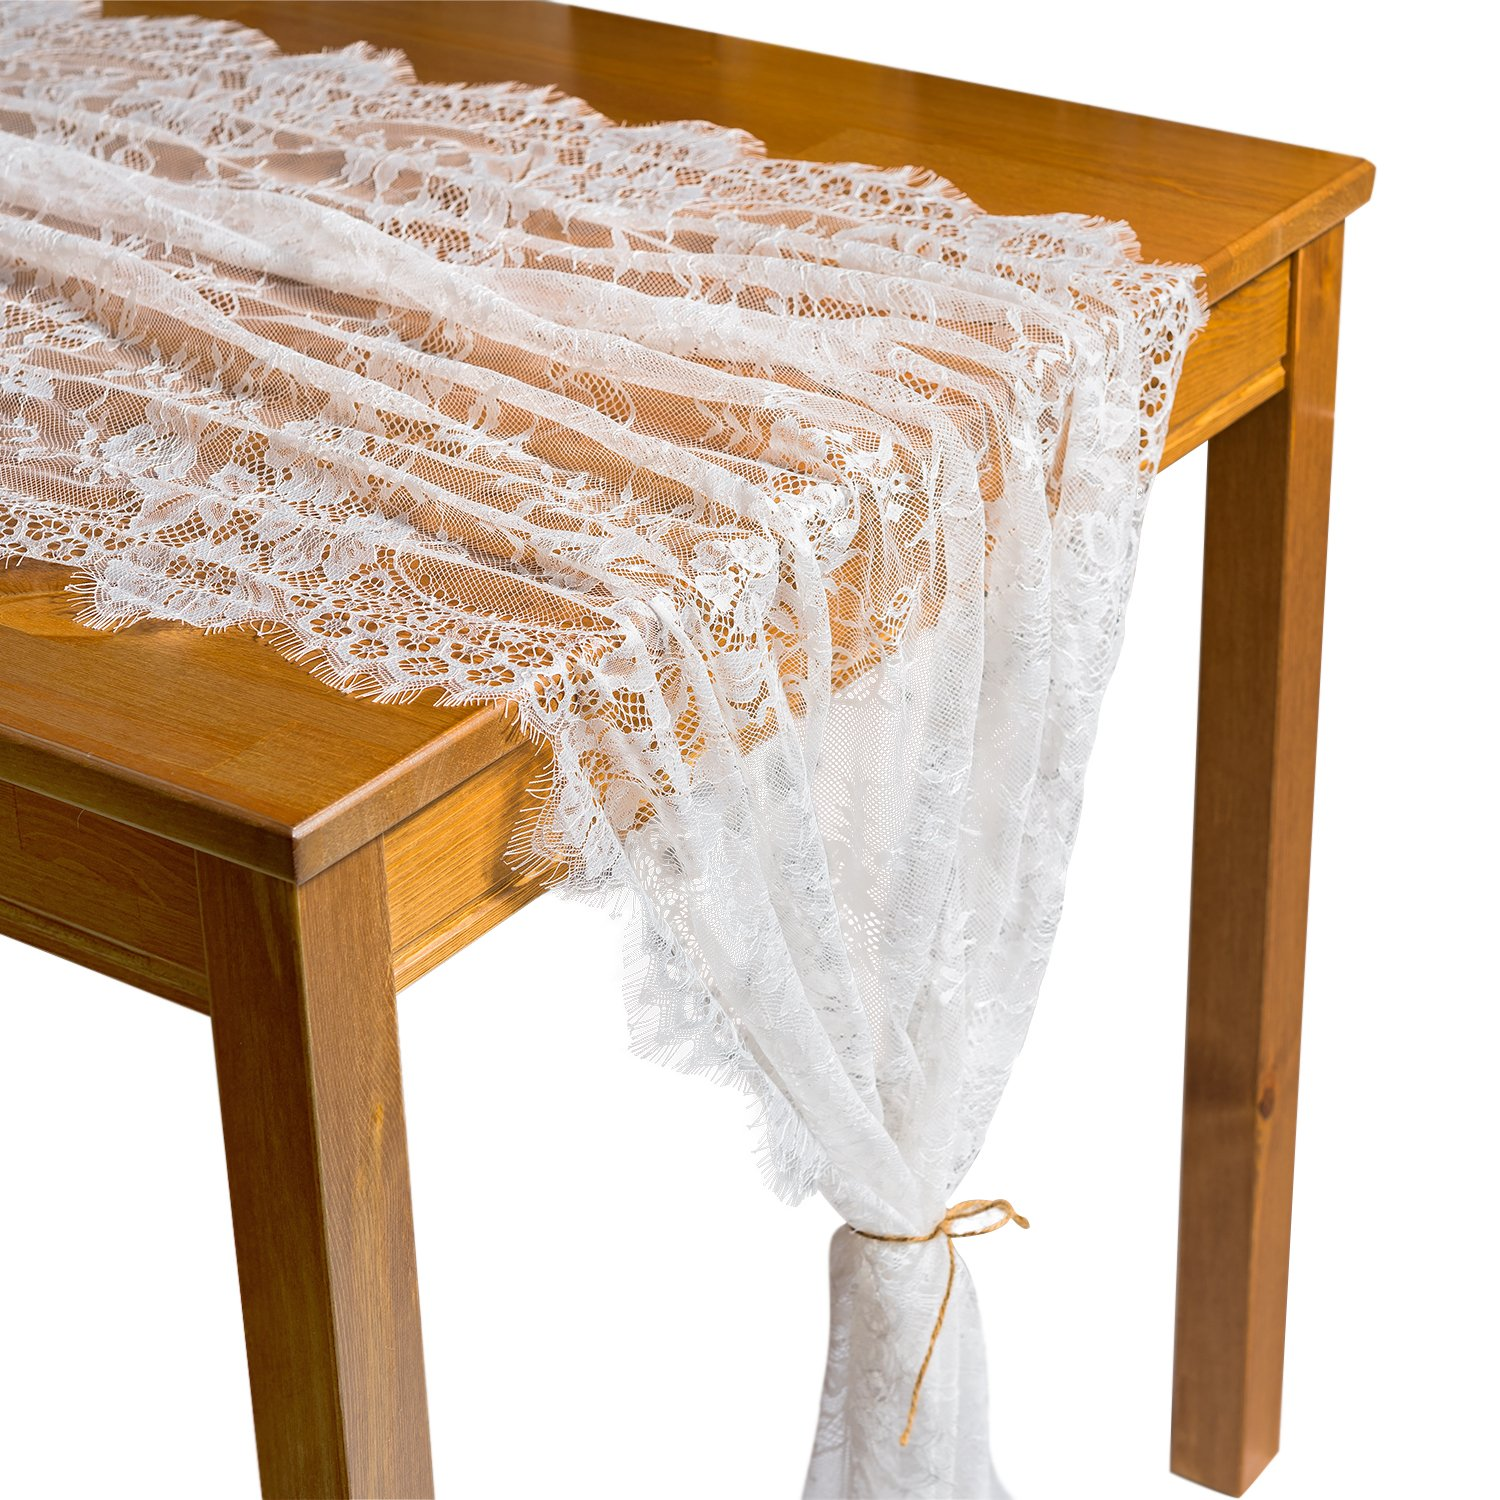 Crisky 32'' x 120'' Lace Table Runners for Wedding Lace Overlay with Rose Vintage Embroidered Rustic Wedding Reception Decor, Bridal Shower Decoration, Vintage French Country Farmhouse Decor